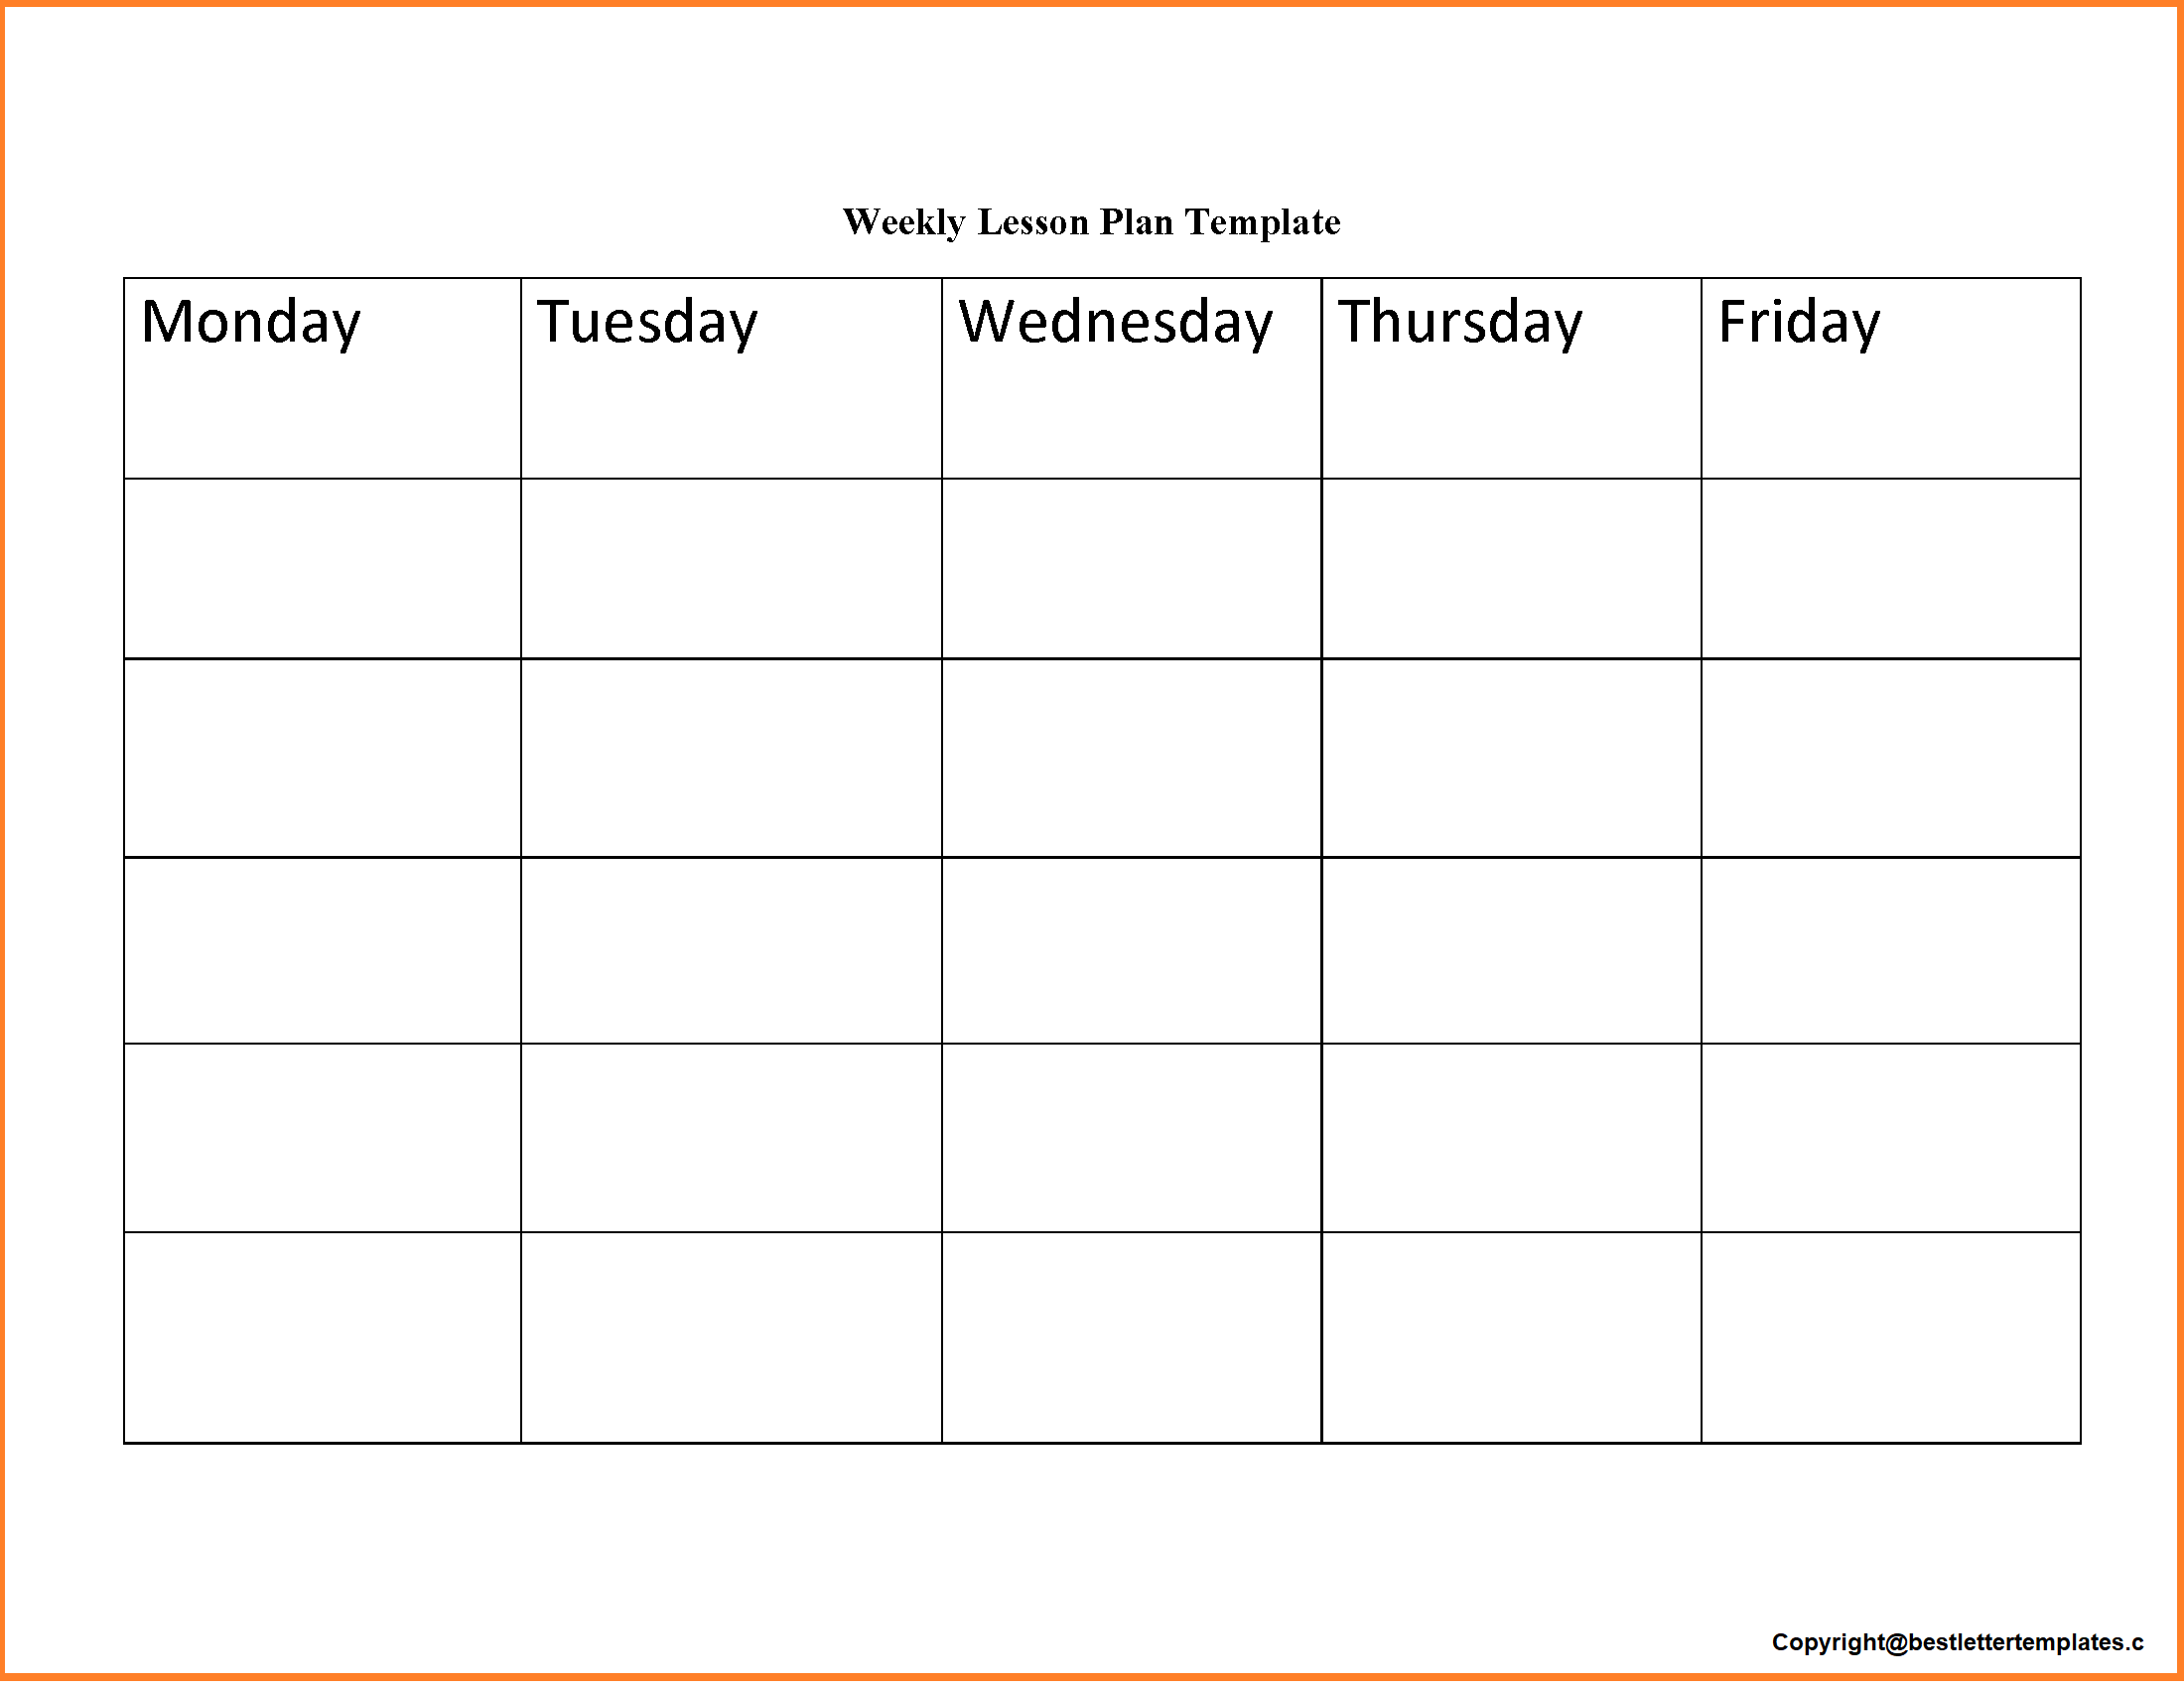 Weekly Lesson Planner Template Doc, PDF, Excel